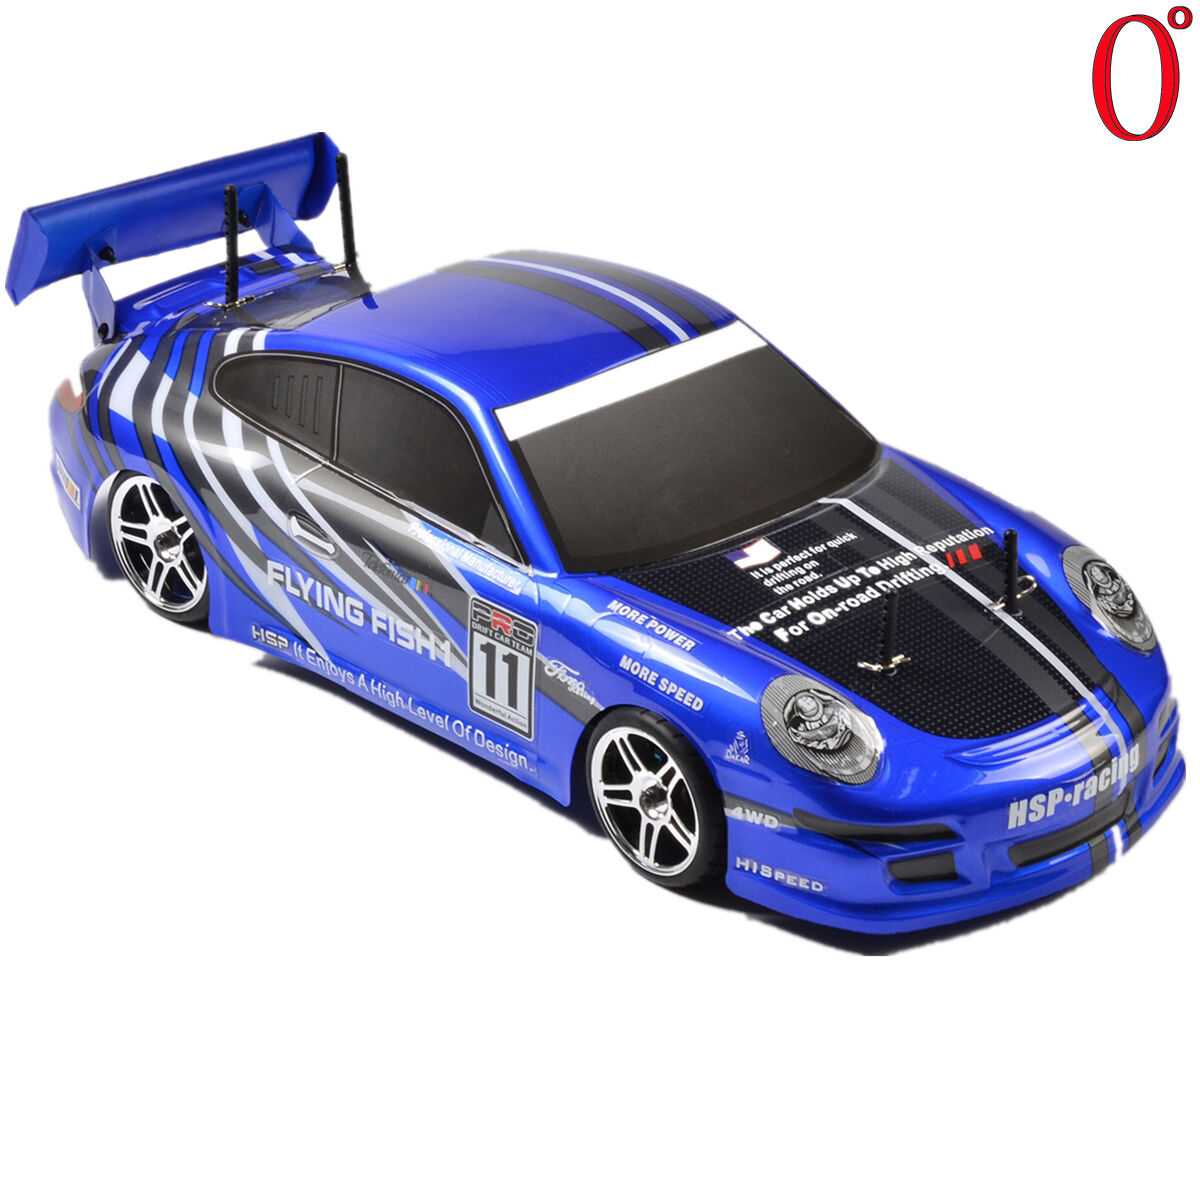 HSP 1 10 4WD  Racing On strada RC auto Top Brushless RTR  Electric energia 94103TOP2  vendita all'ingrosso